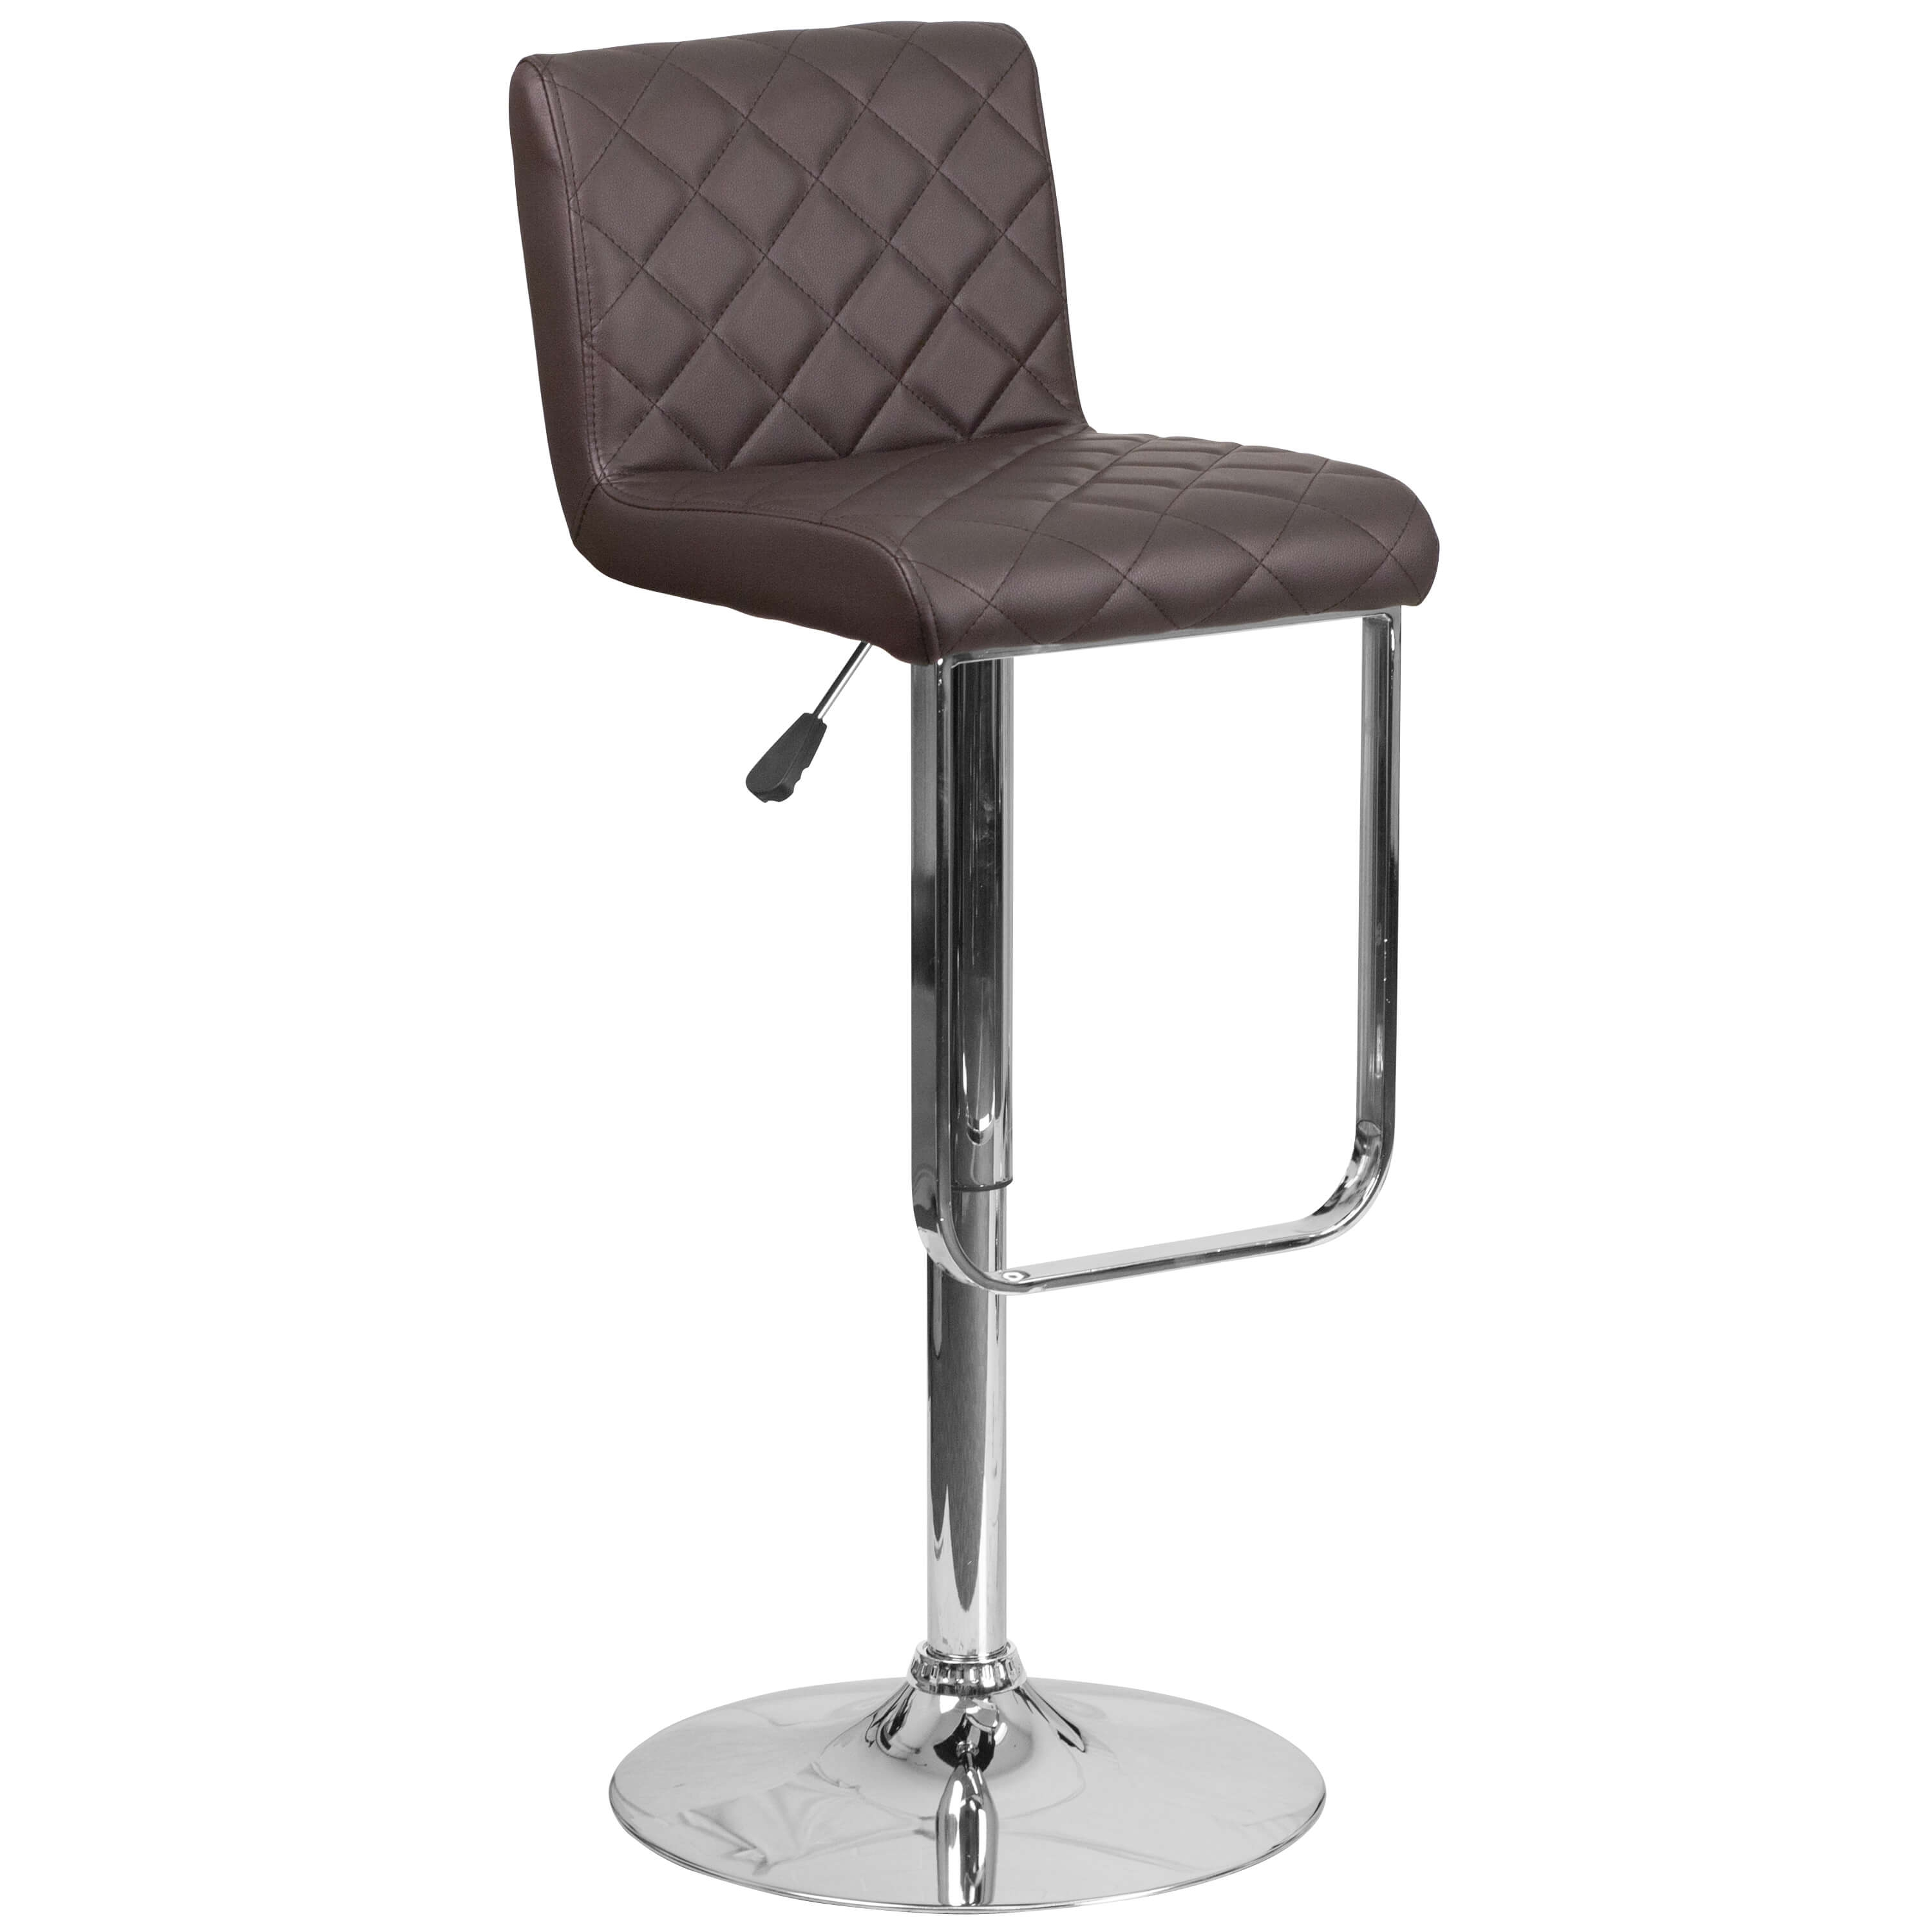 Cafe chairs CUB DS 8101 BRN GG FLA